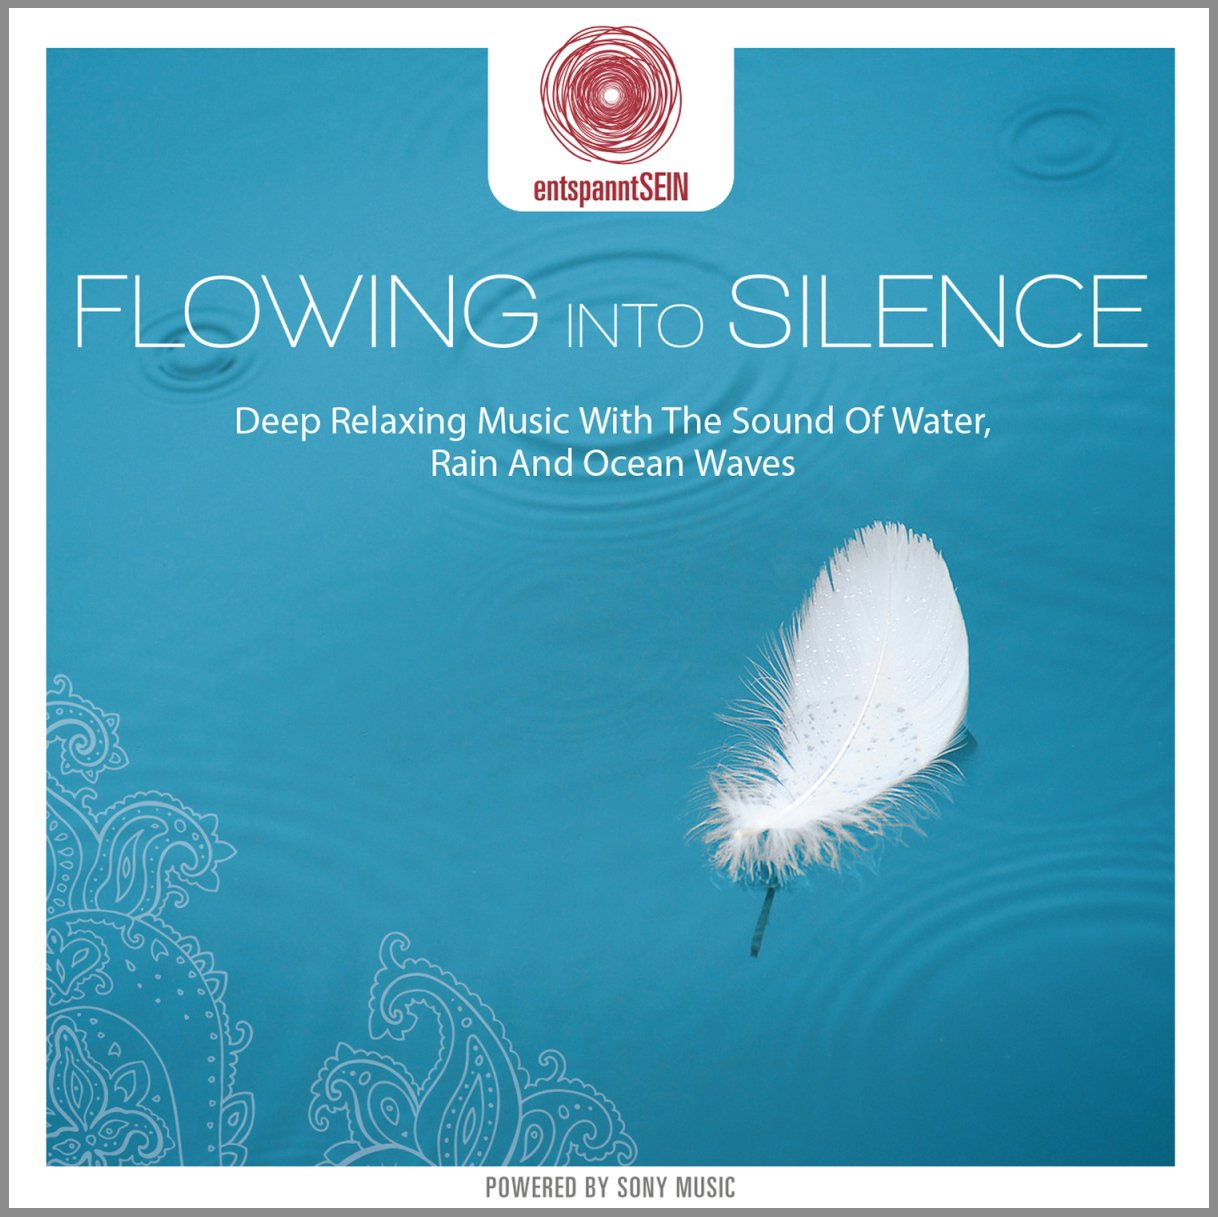 Flowing into silence thumbnail